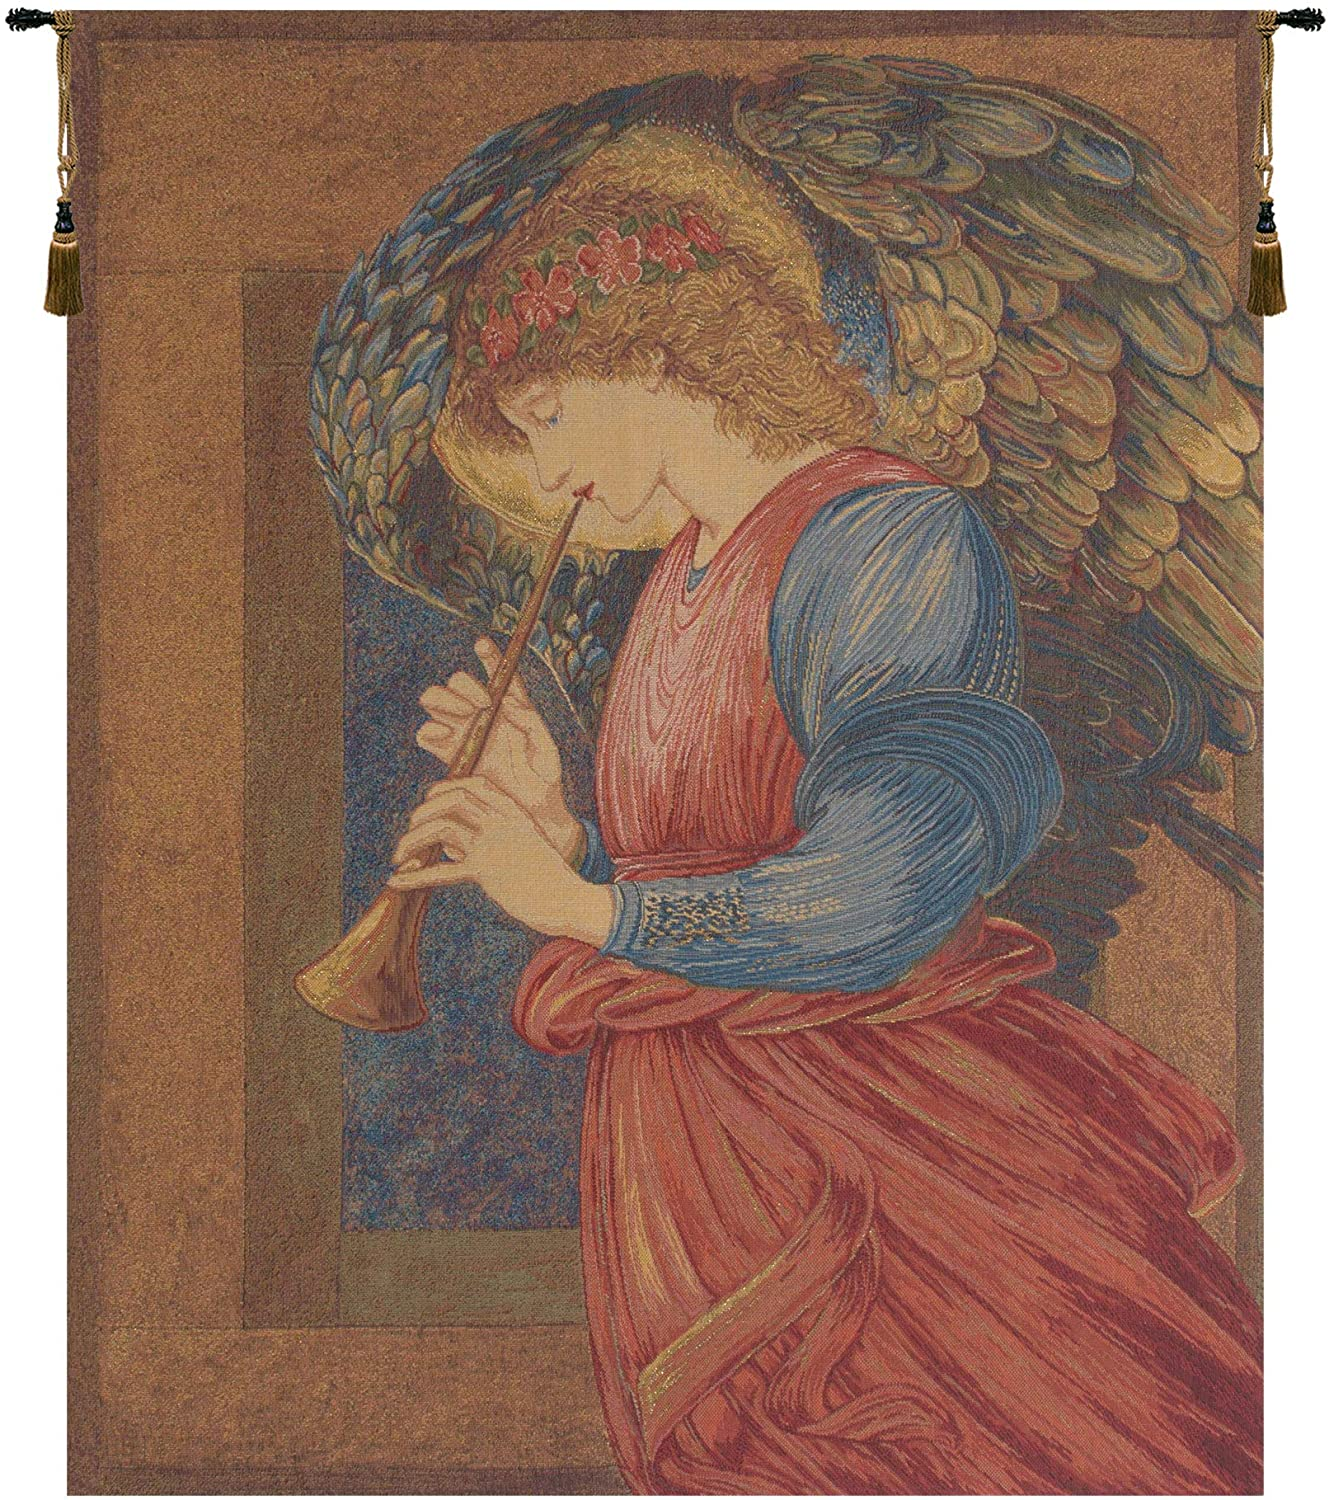 Charlotte Home Furnishings Inc. 'Flageolet Angel By Edward Burne Jones' European Small Tapestry Wall Hanging | Viscose, Cotton and Polyester Blend Wall Art | 18 in. x 24 in. | Home Decor Accents